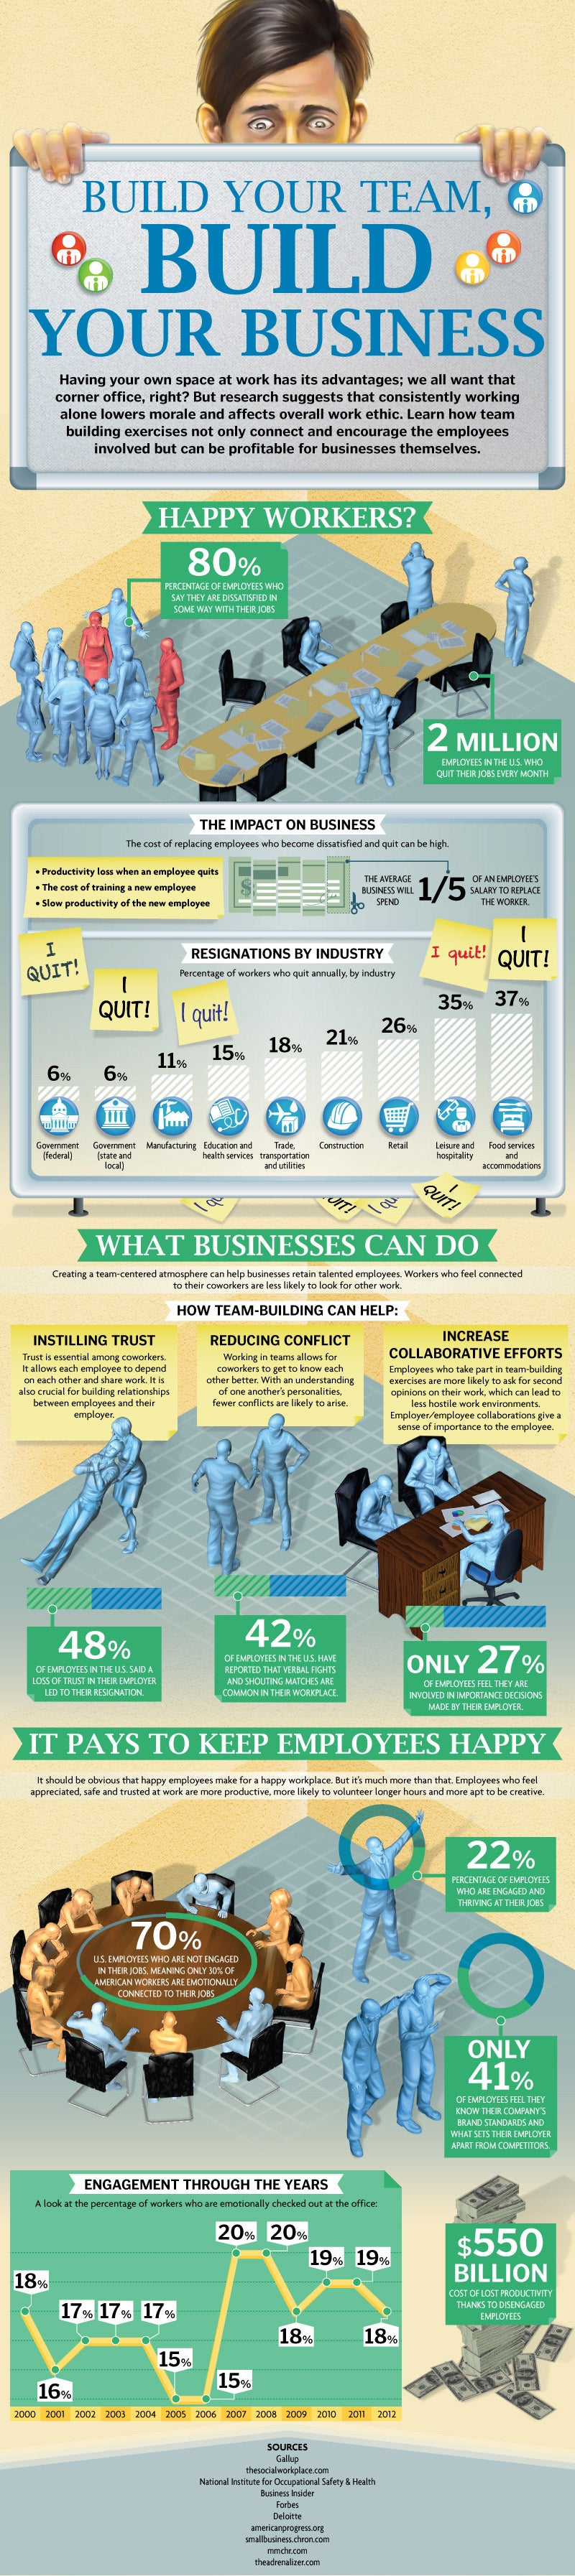 The Real Cost of Unhappy Employees (Infographic)